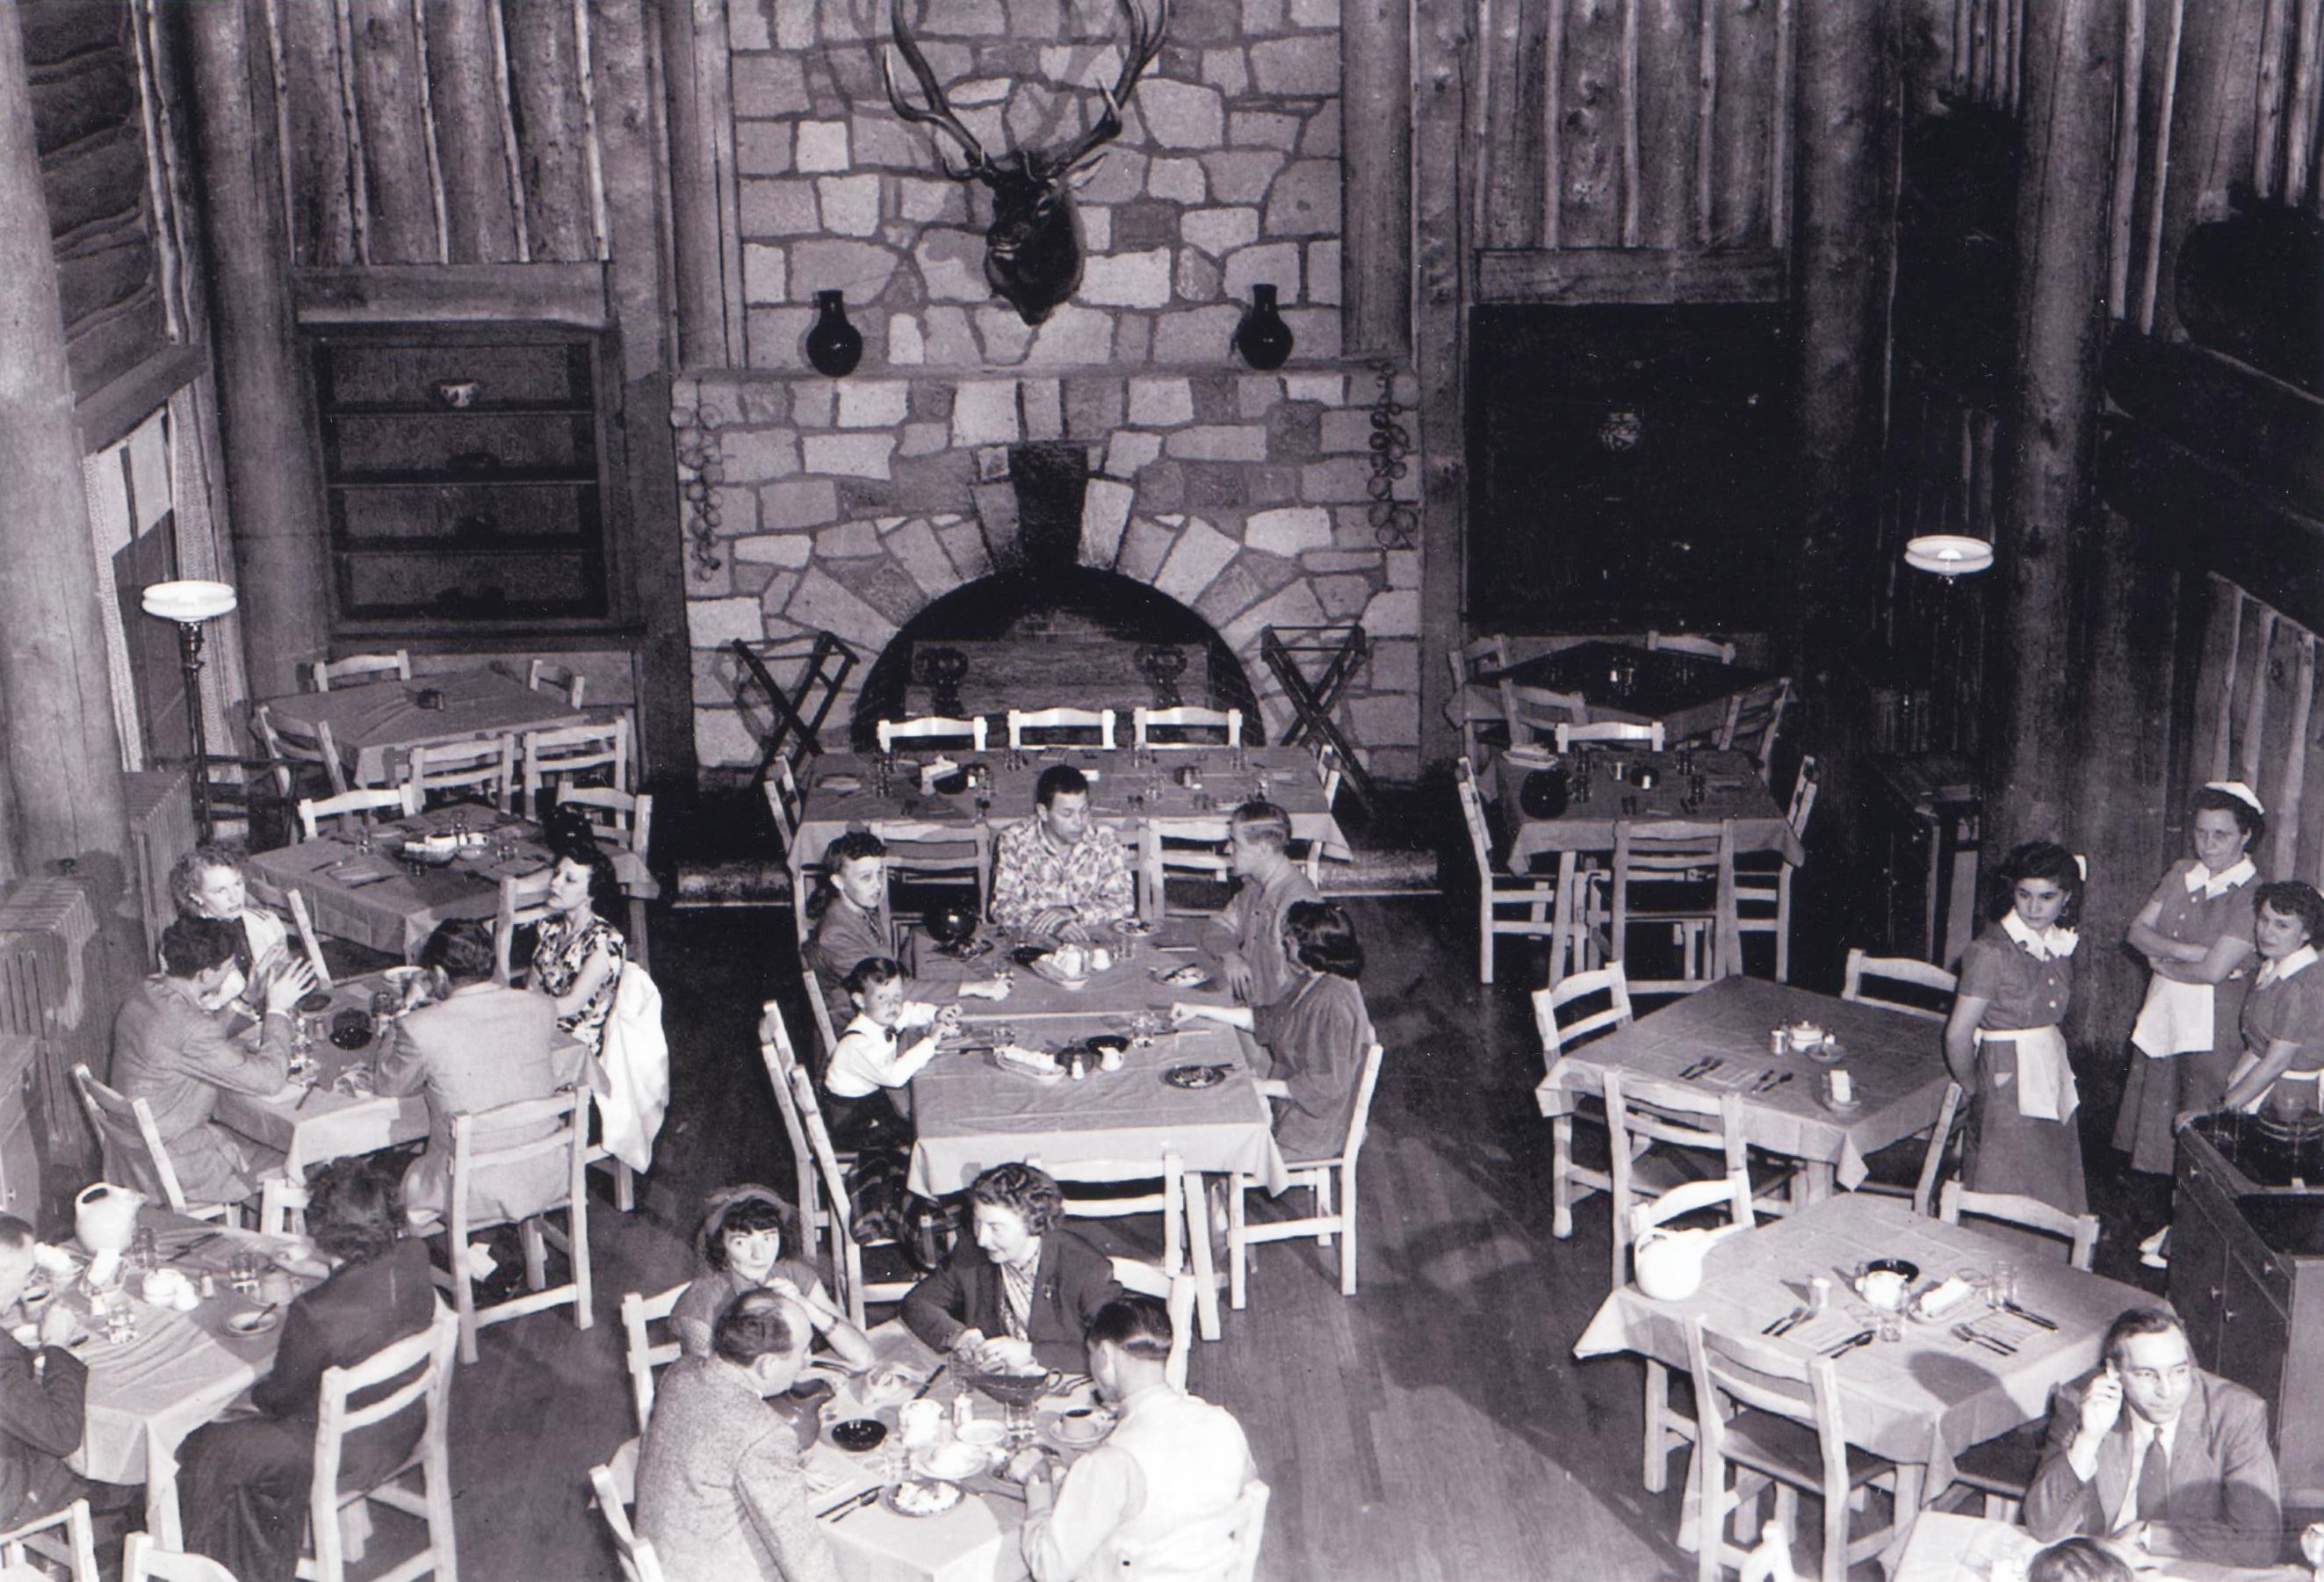 Interior of Fuller Lodge. Photograph courtesy of Los Alamos National Laboratory.